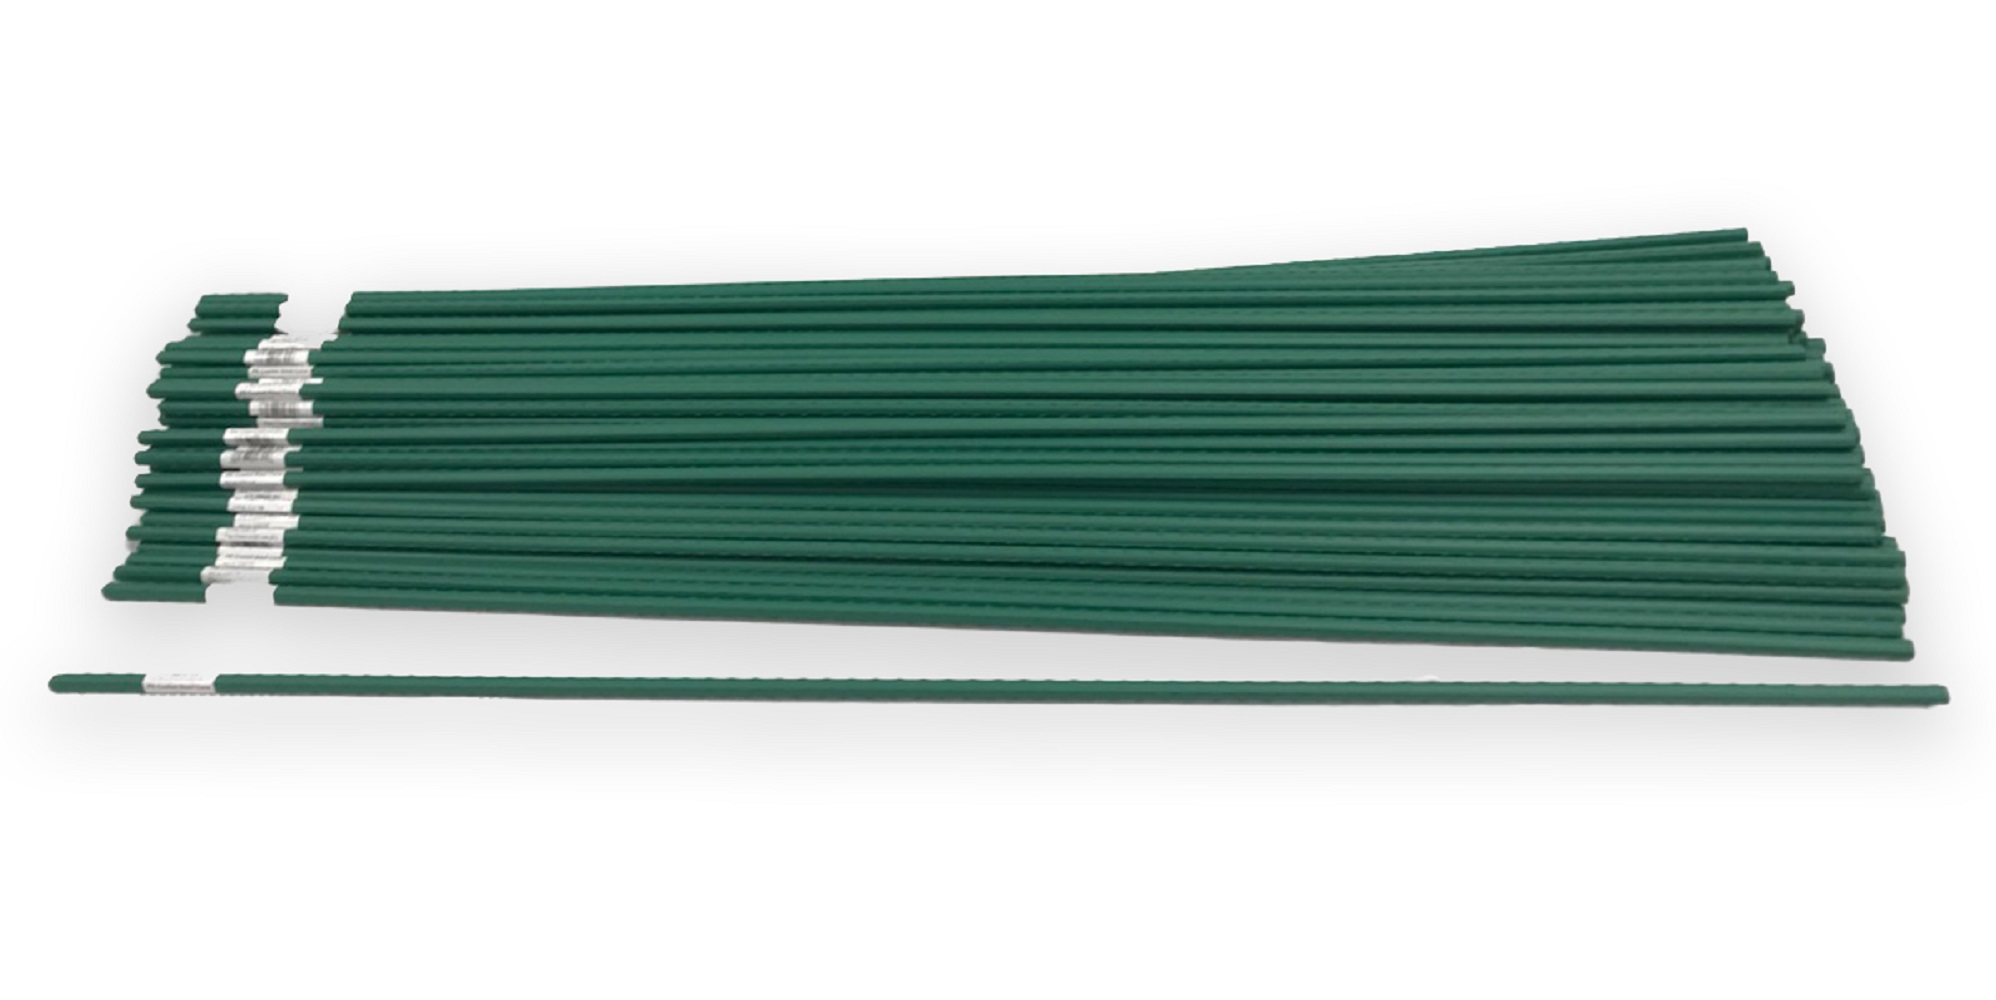 Bamboo Steel Garden Stakes Plant Support Plastic Coated 4ft X .5inch  (100 Pack)